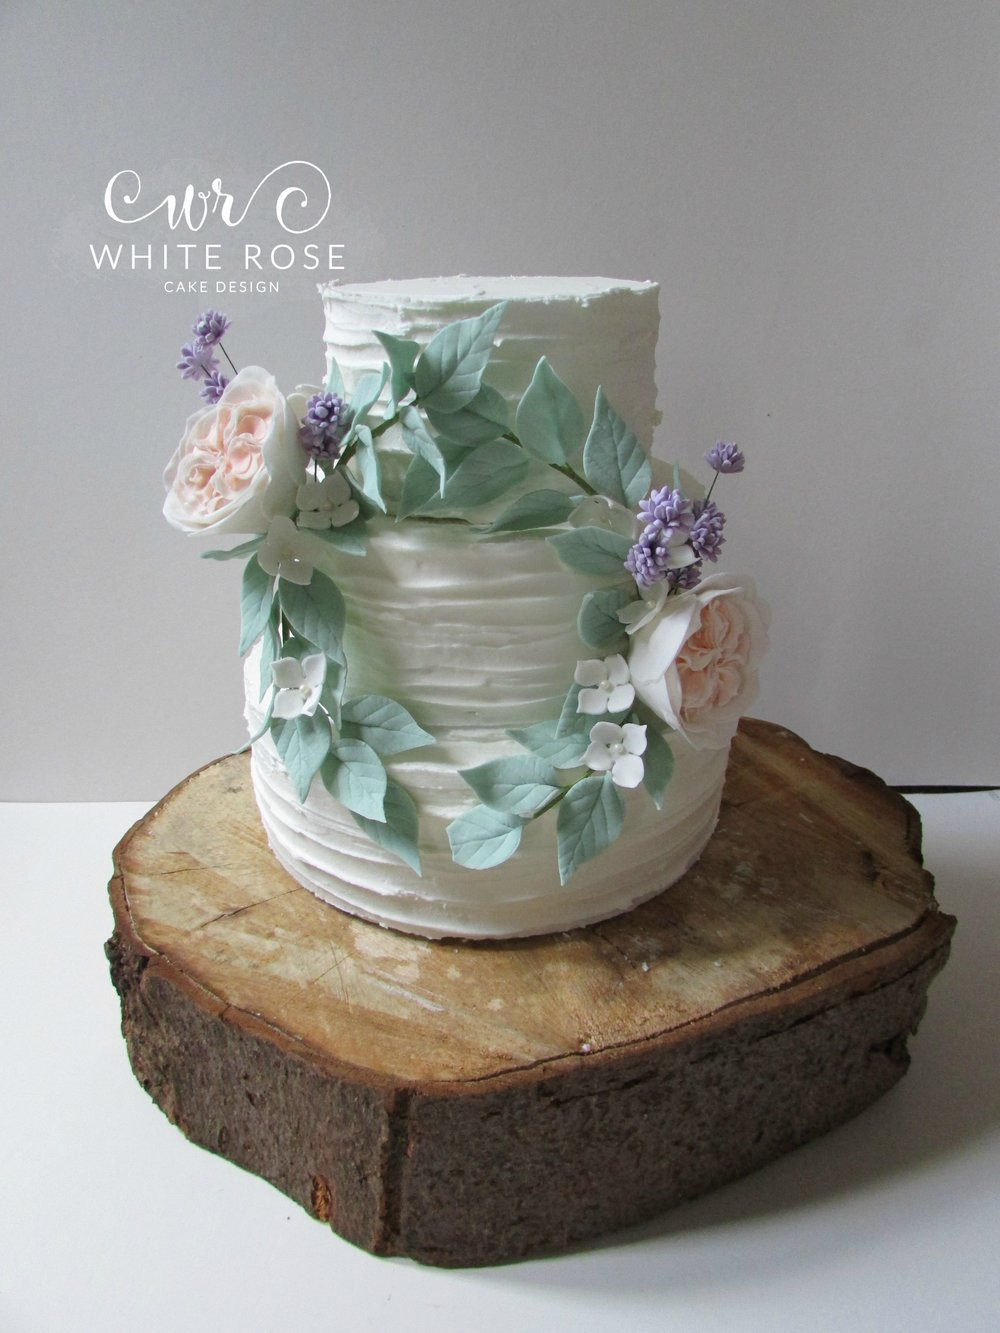 Cake - White Rose Cake Design  Fully bespoke wedding cake serving up to 100 guests, worth up to £450. T&Cs would be:  * Sponge cakes only (fruit cake available at extra charge)  * At least 3 months notice for the order  * Free delivery within 50 miles of HD9  * Delivery available outside this but charged at £1 per mile from HD9  * Cake can be collected from our premises in HD9  * All design work will remain copyright White Rose Cake Design  * Larger cakes available at extra cost - to be confirmed depending on size and ultimate design.   * The order would be subject to our usual T&Cs for each order, a copy of which would be supplied when the order is placed.